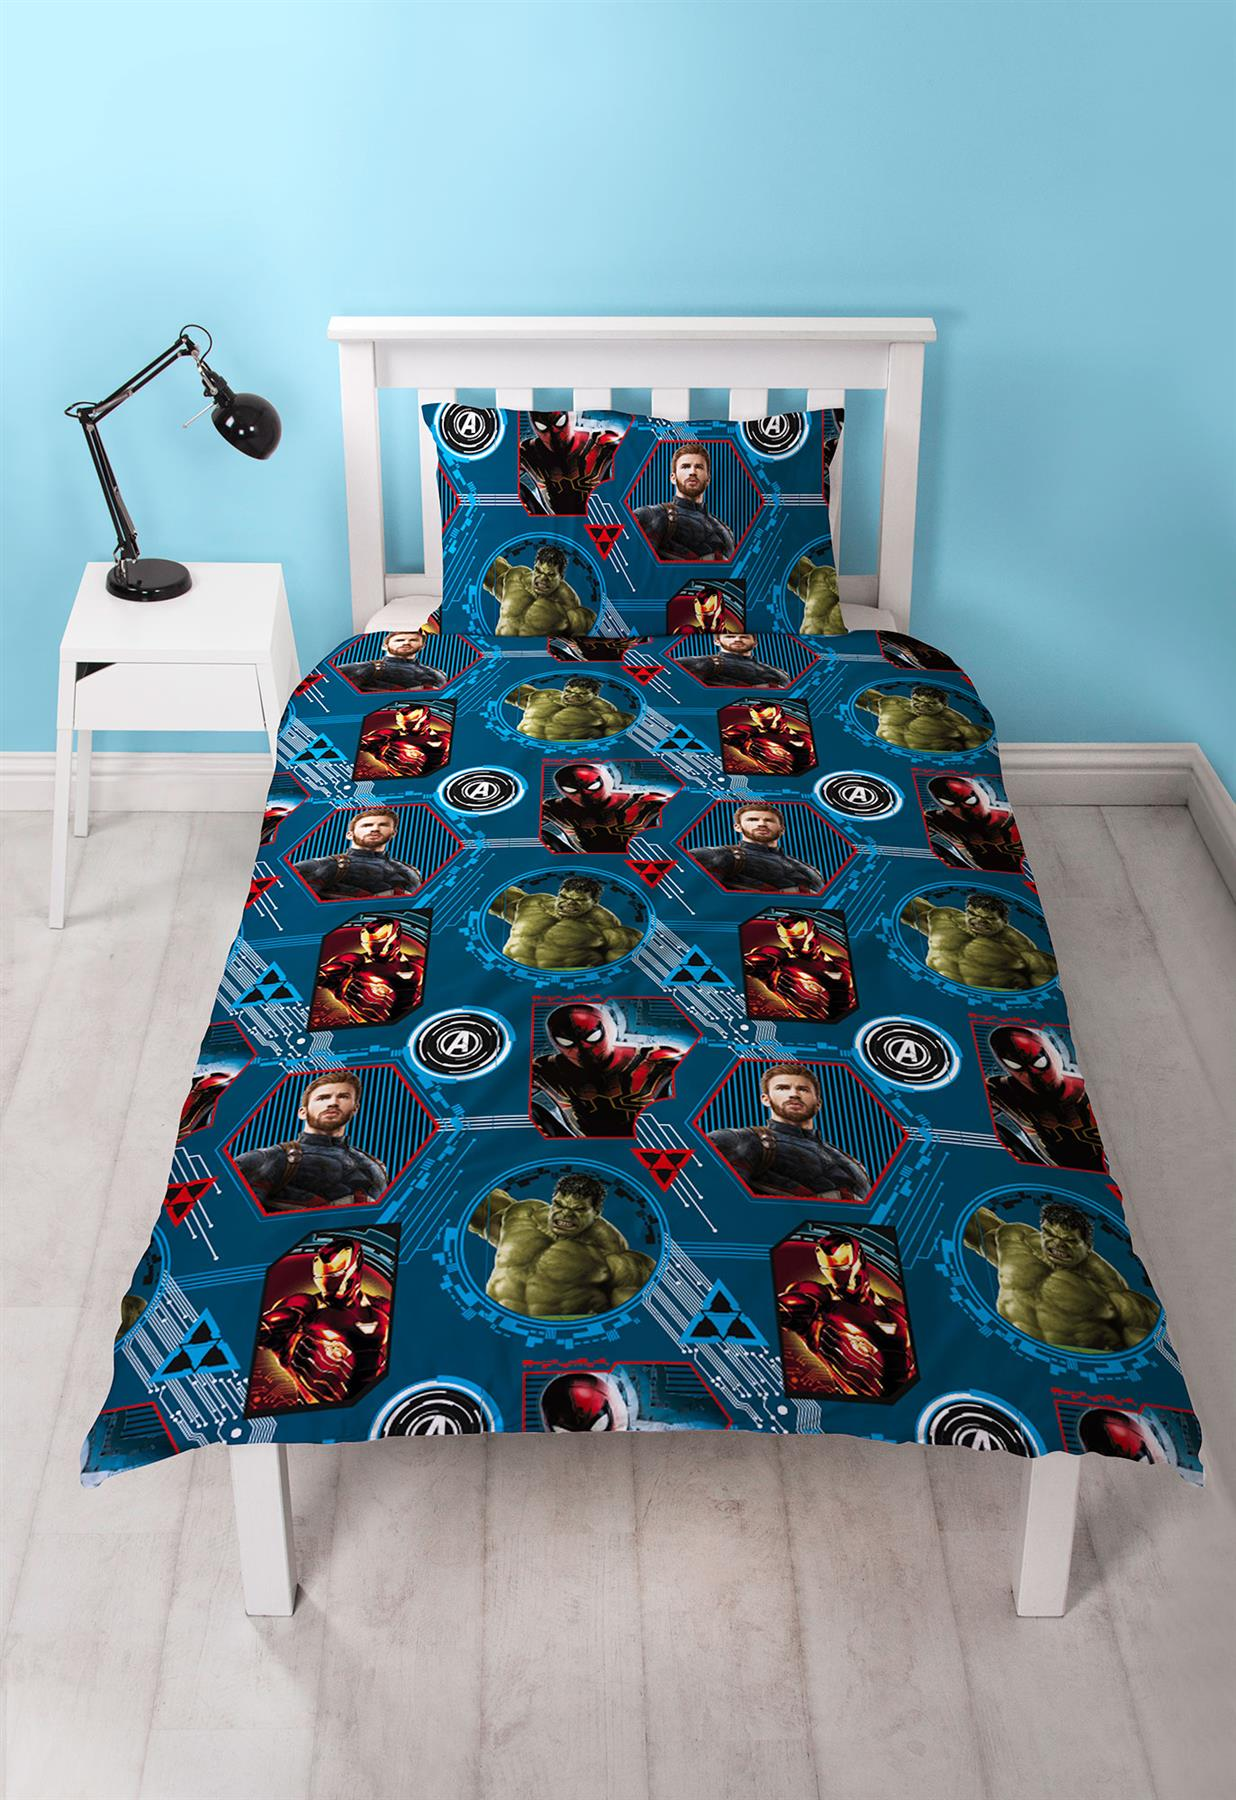 Official-Marvel-Comics-Avengers-Licensed-Duvet-Covers-Single-Double thumbnail 5